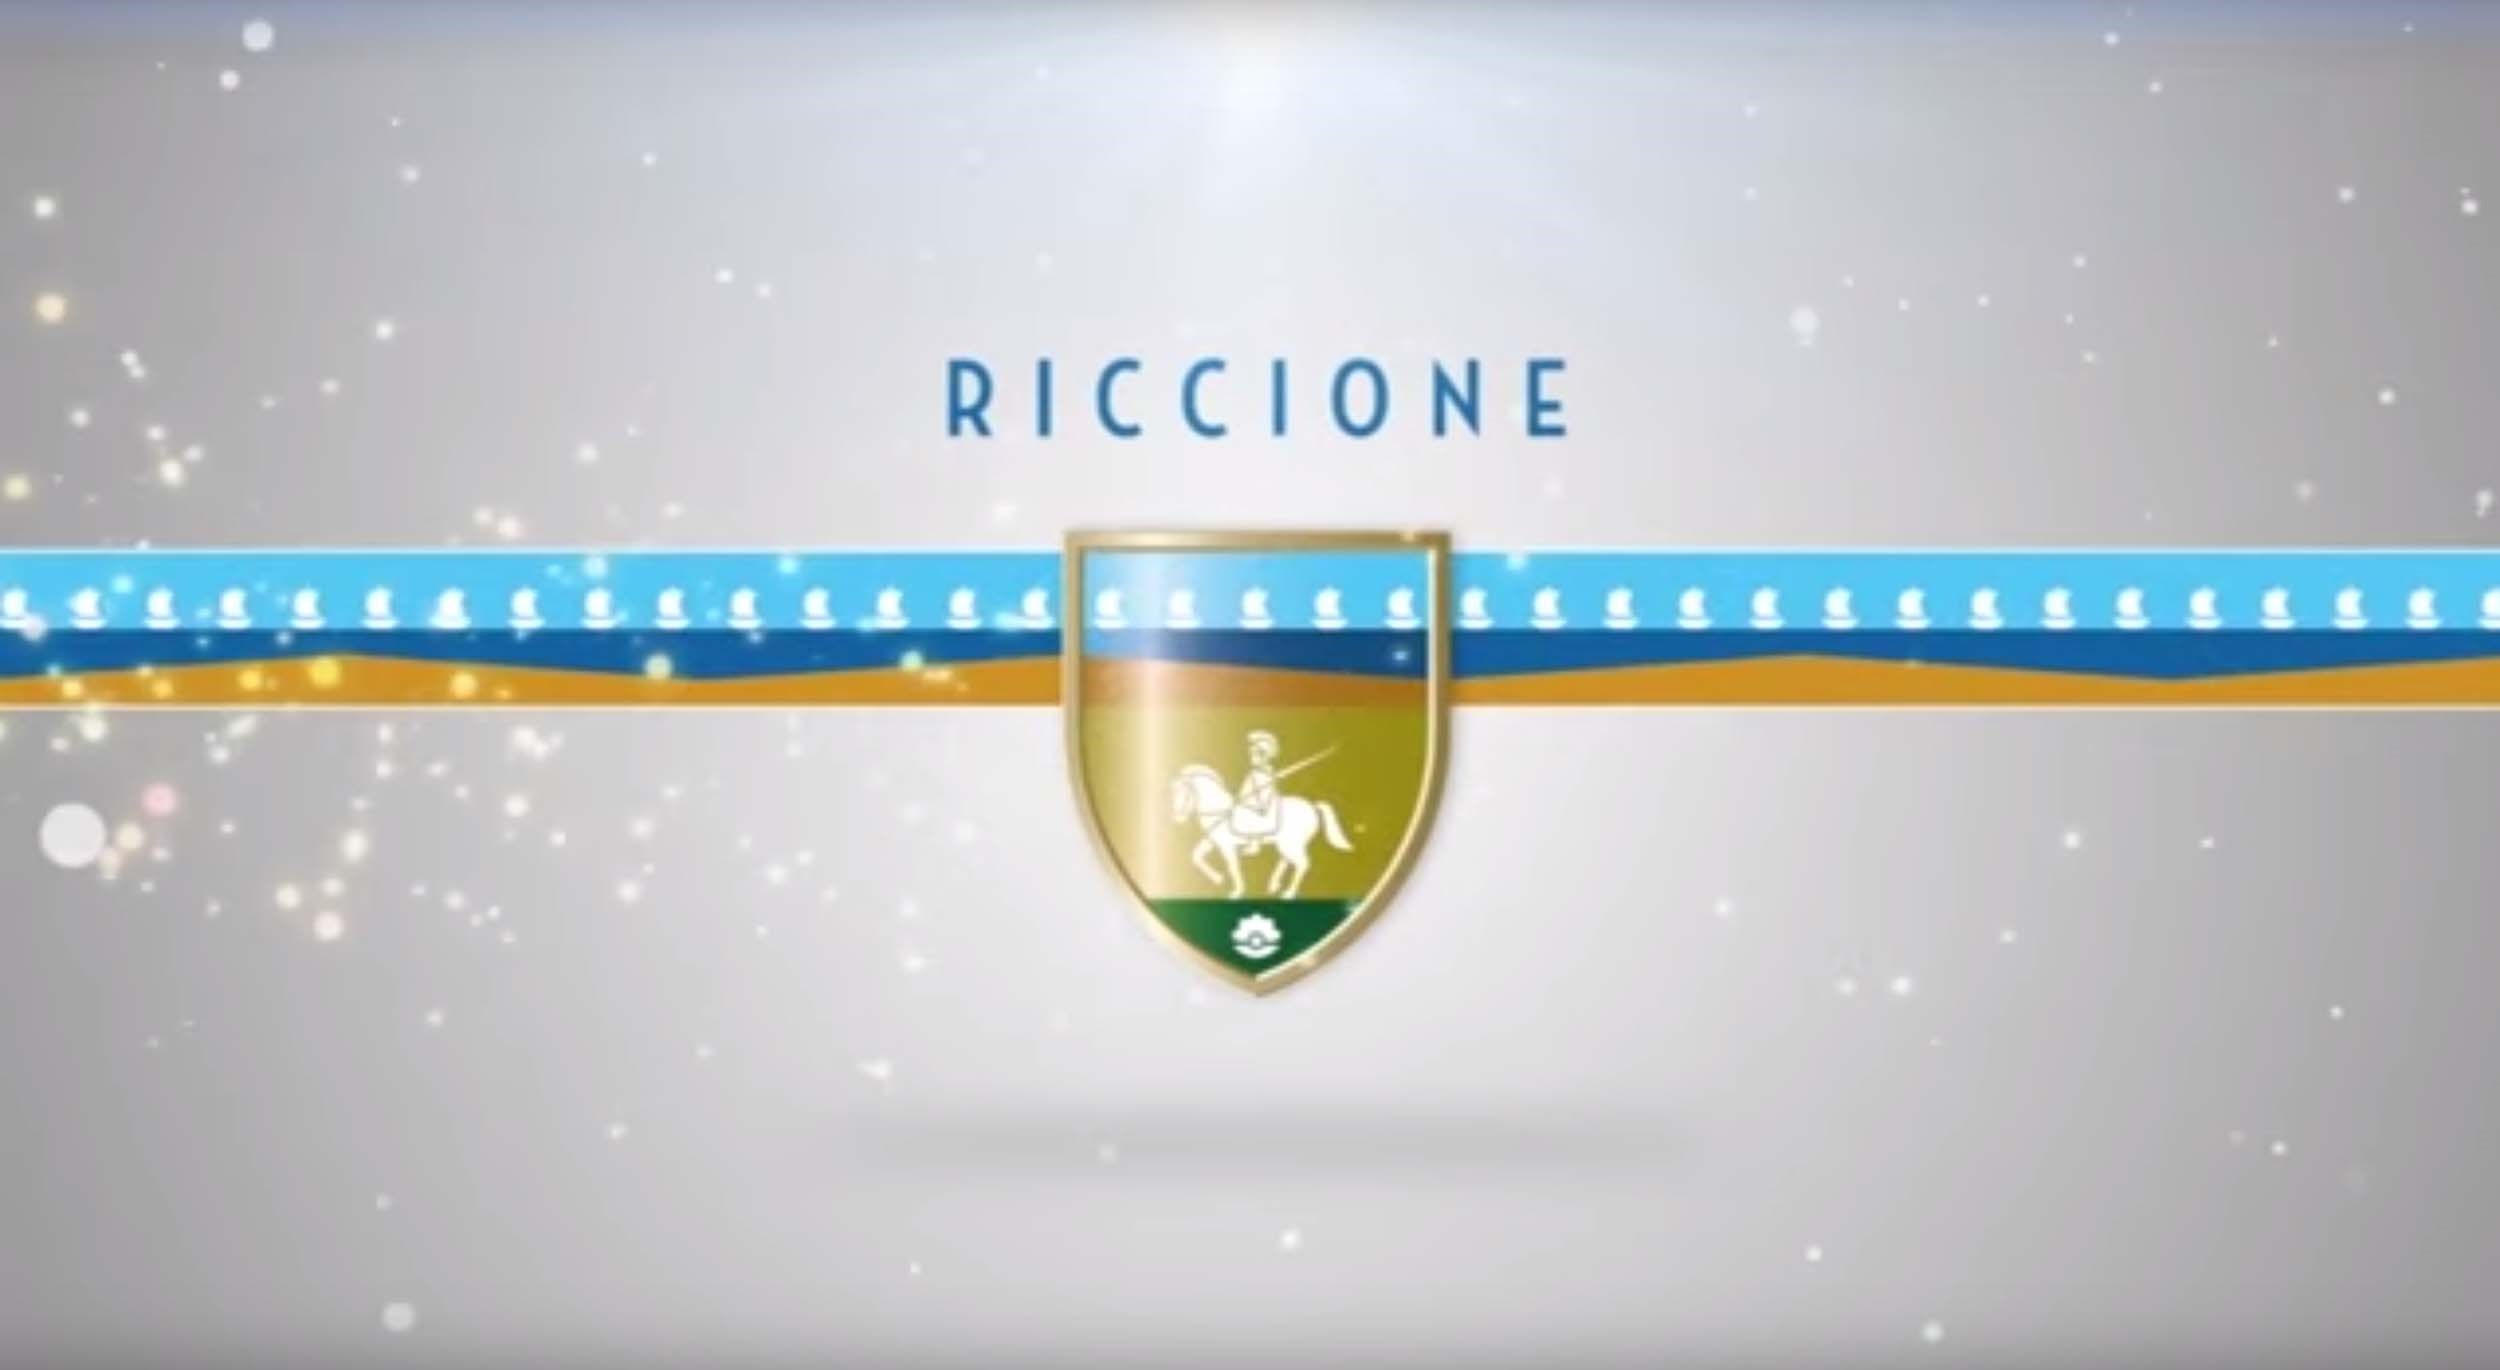 Riccione: your holidays in the hotels of Riccione | Riccione.it